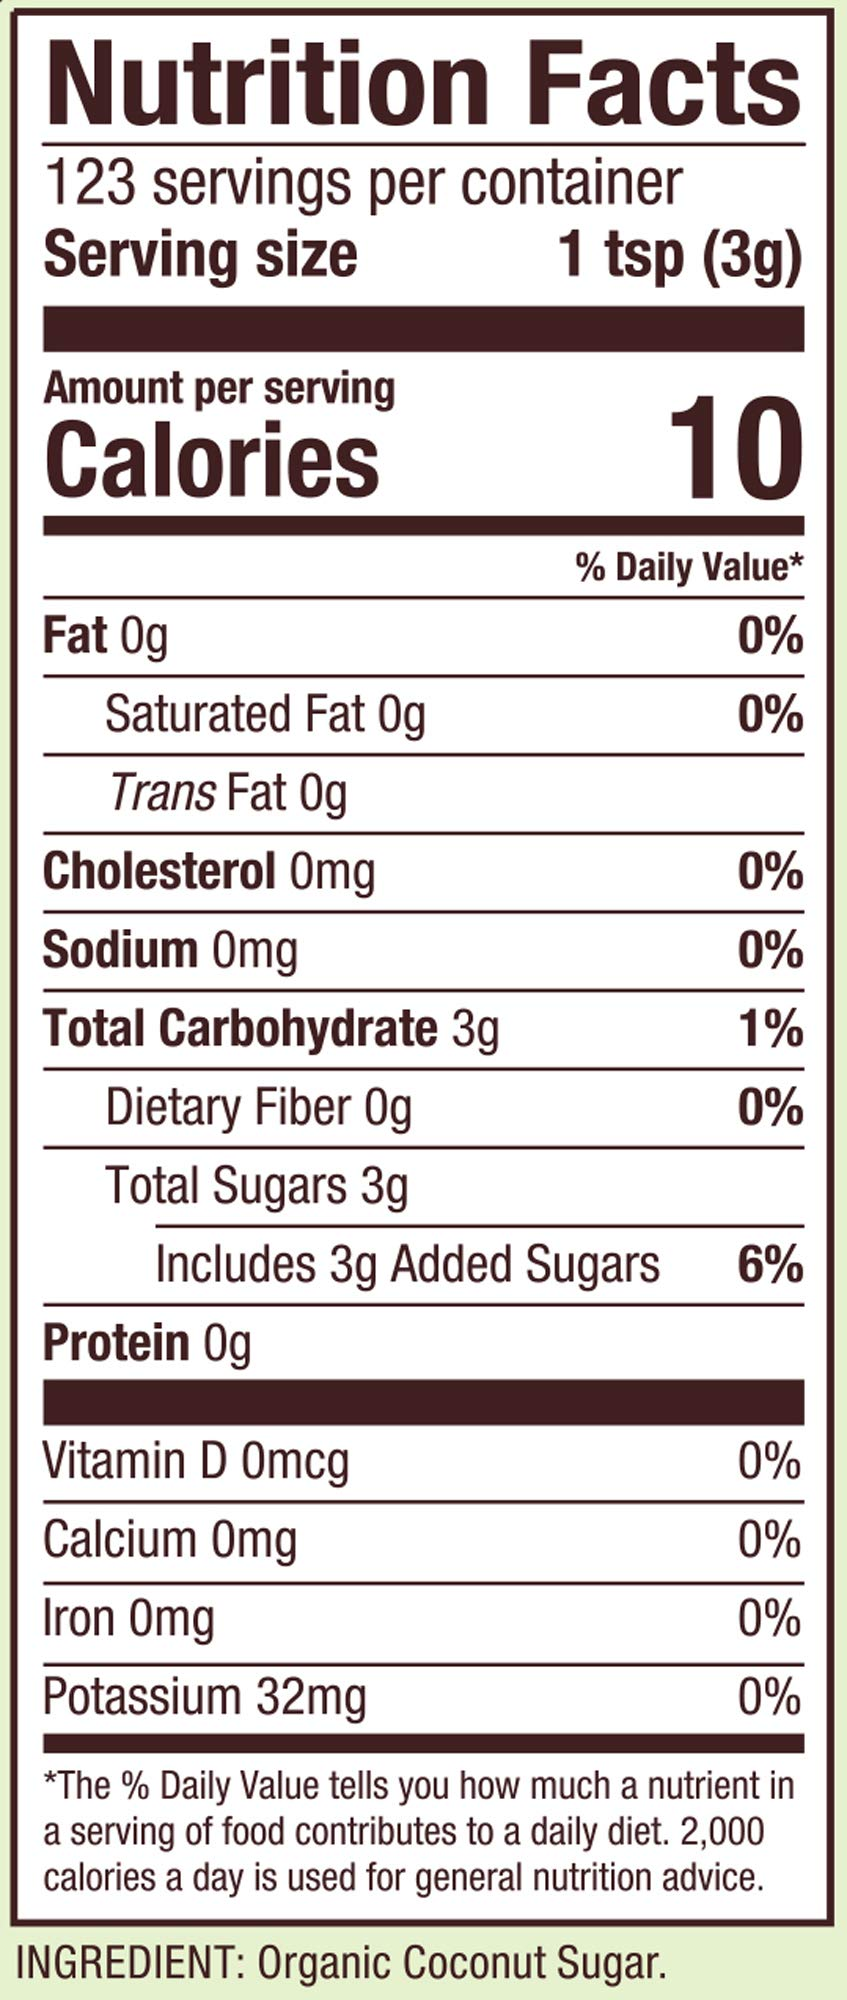 Bob's Red Mill Resealable Organic Coconut Sugar, 13 Oz (6 Pack) by Bob's Red Mill (Image #2)